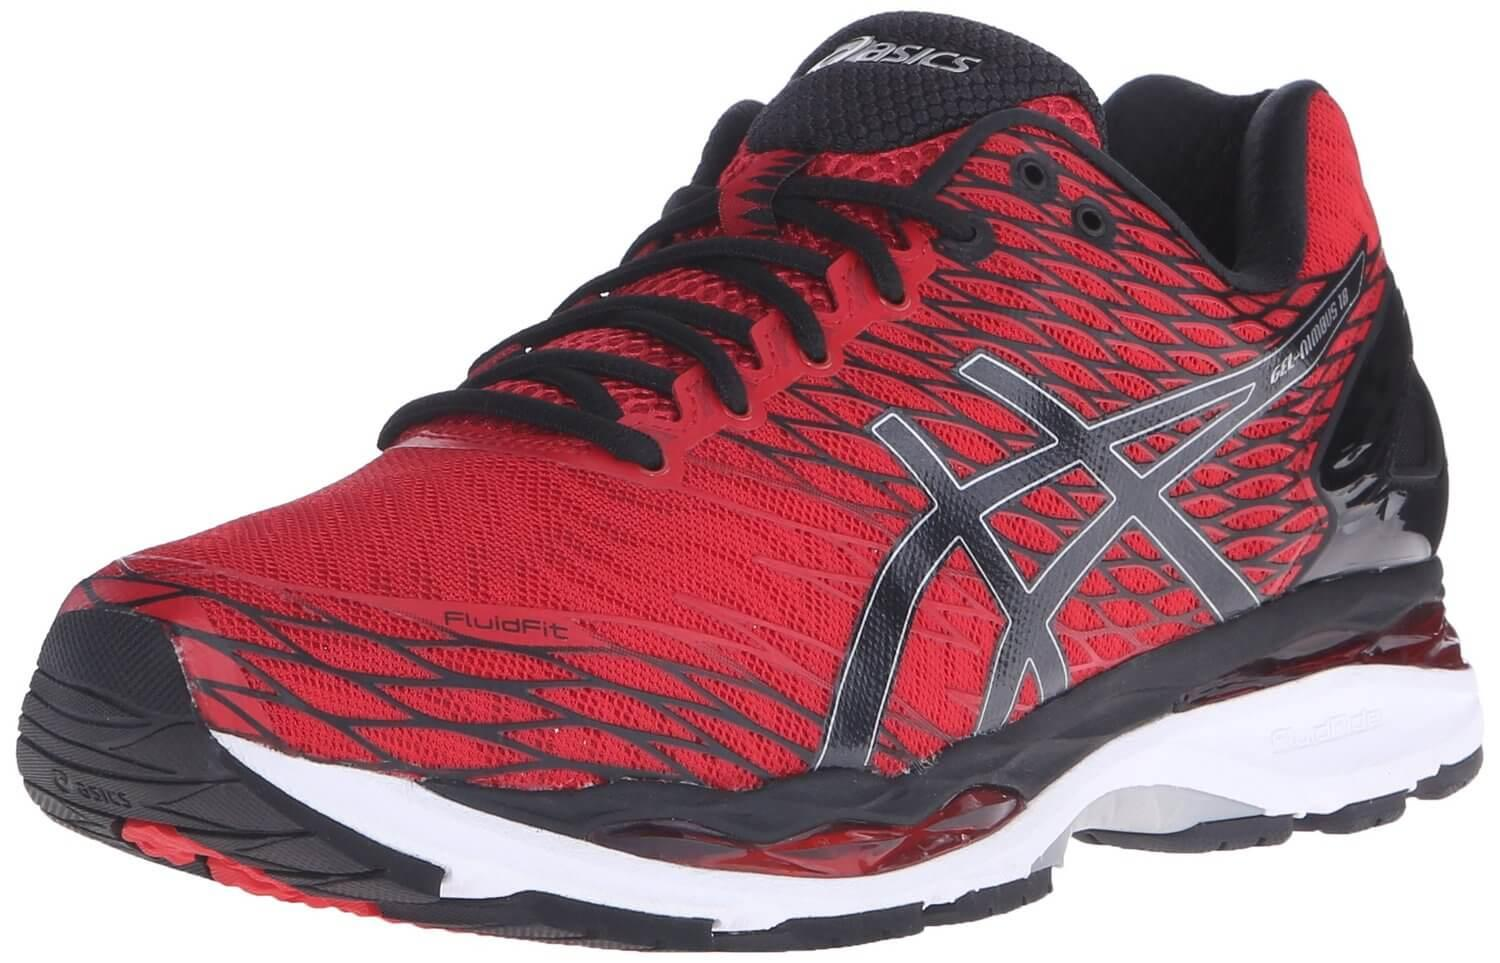 Asics Gel Nimbus Walking Shoes